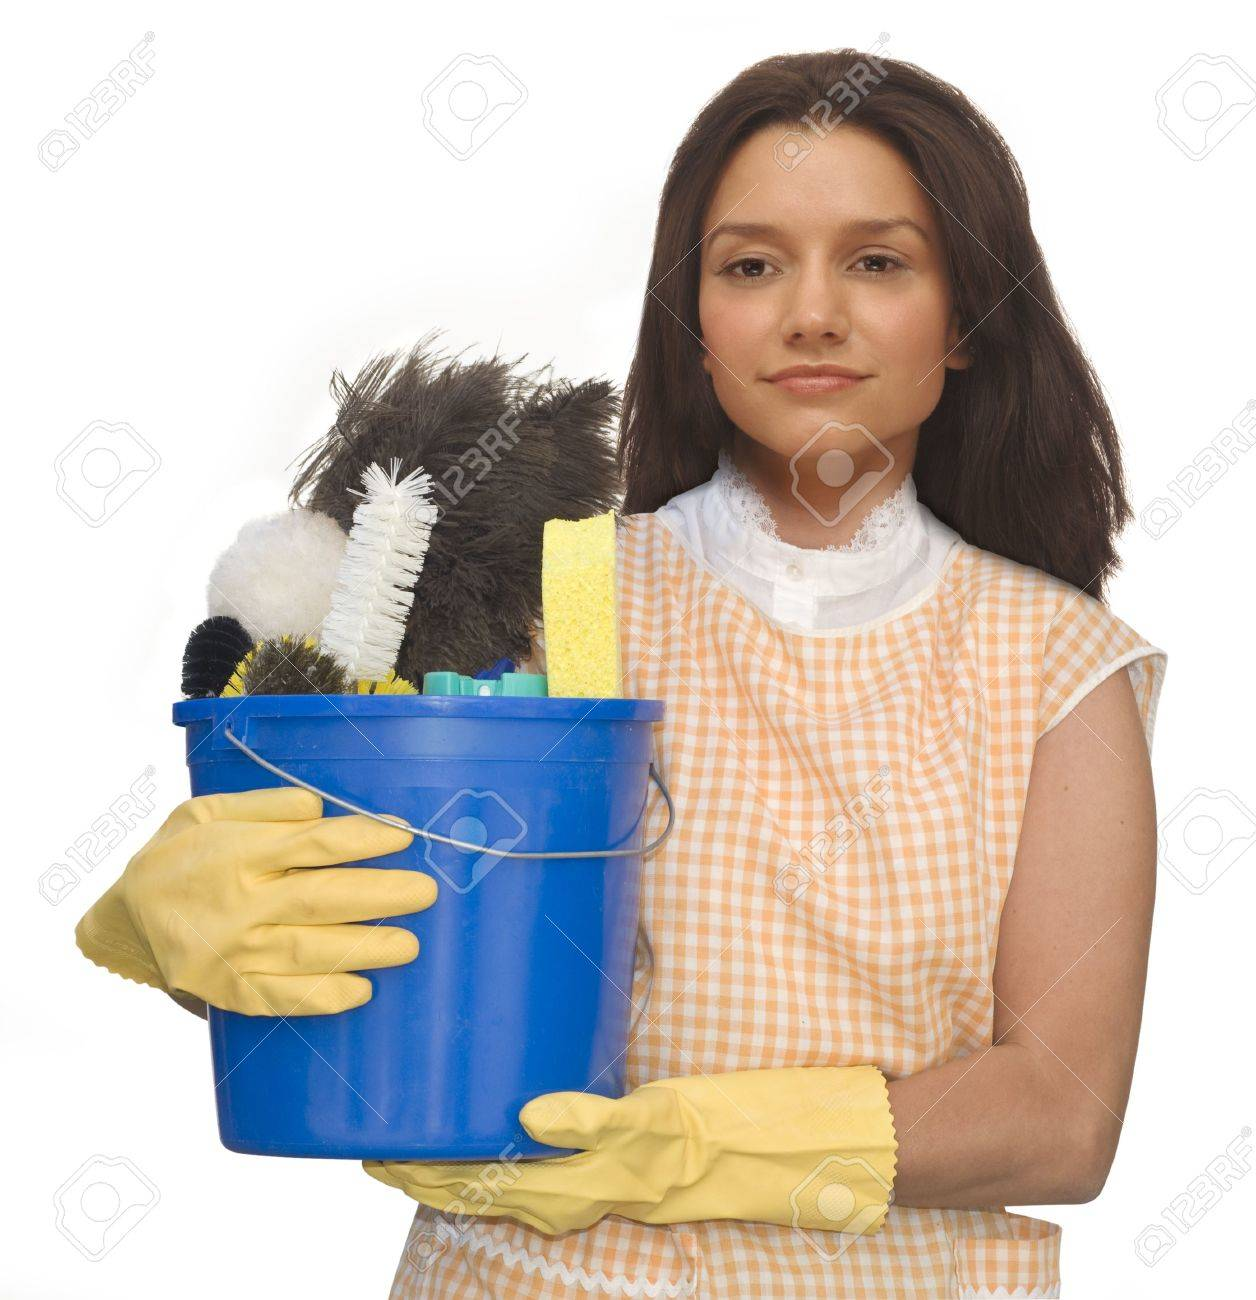 White gloves apron cleaning services - Service Girl Cleaning Lady Wearing Rubber Gloves And An Apron Holding A Bucket Of Cleaning